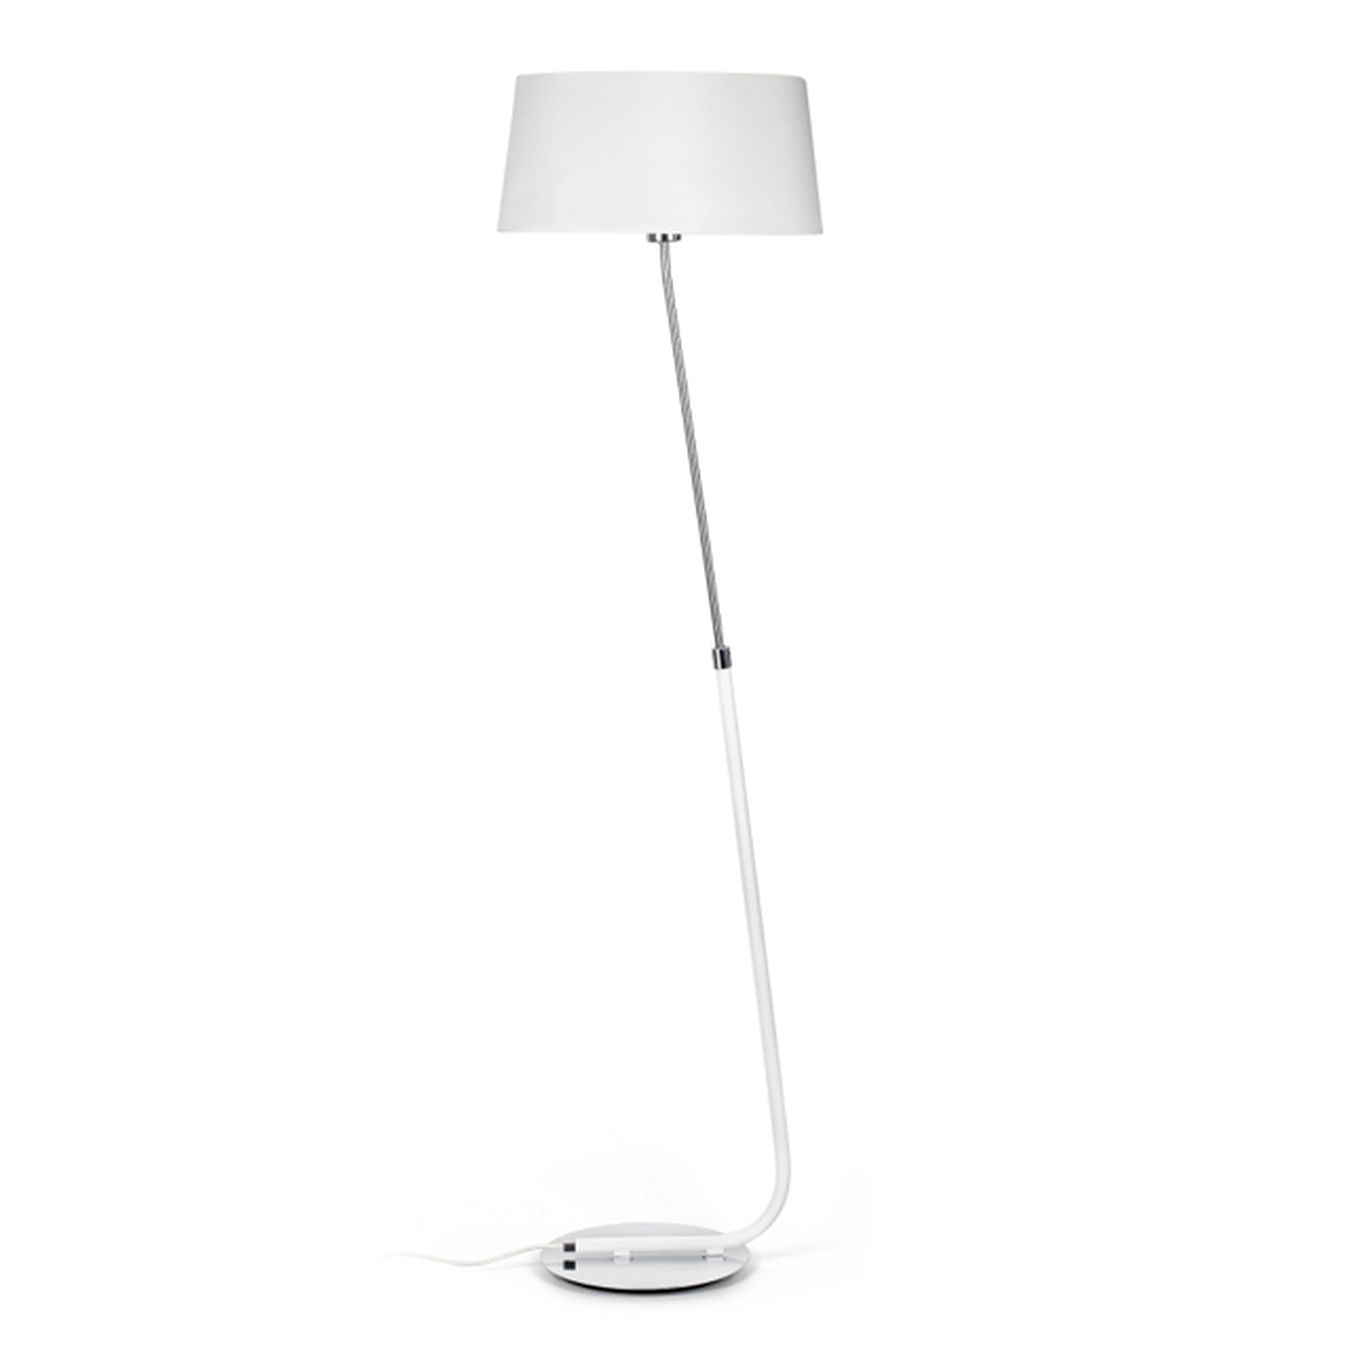 Comprar l mpara pie dise o blanca inclinada tienda for Lamparas led diseno